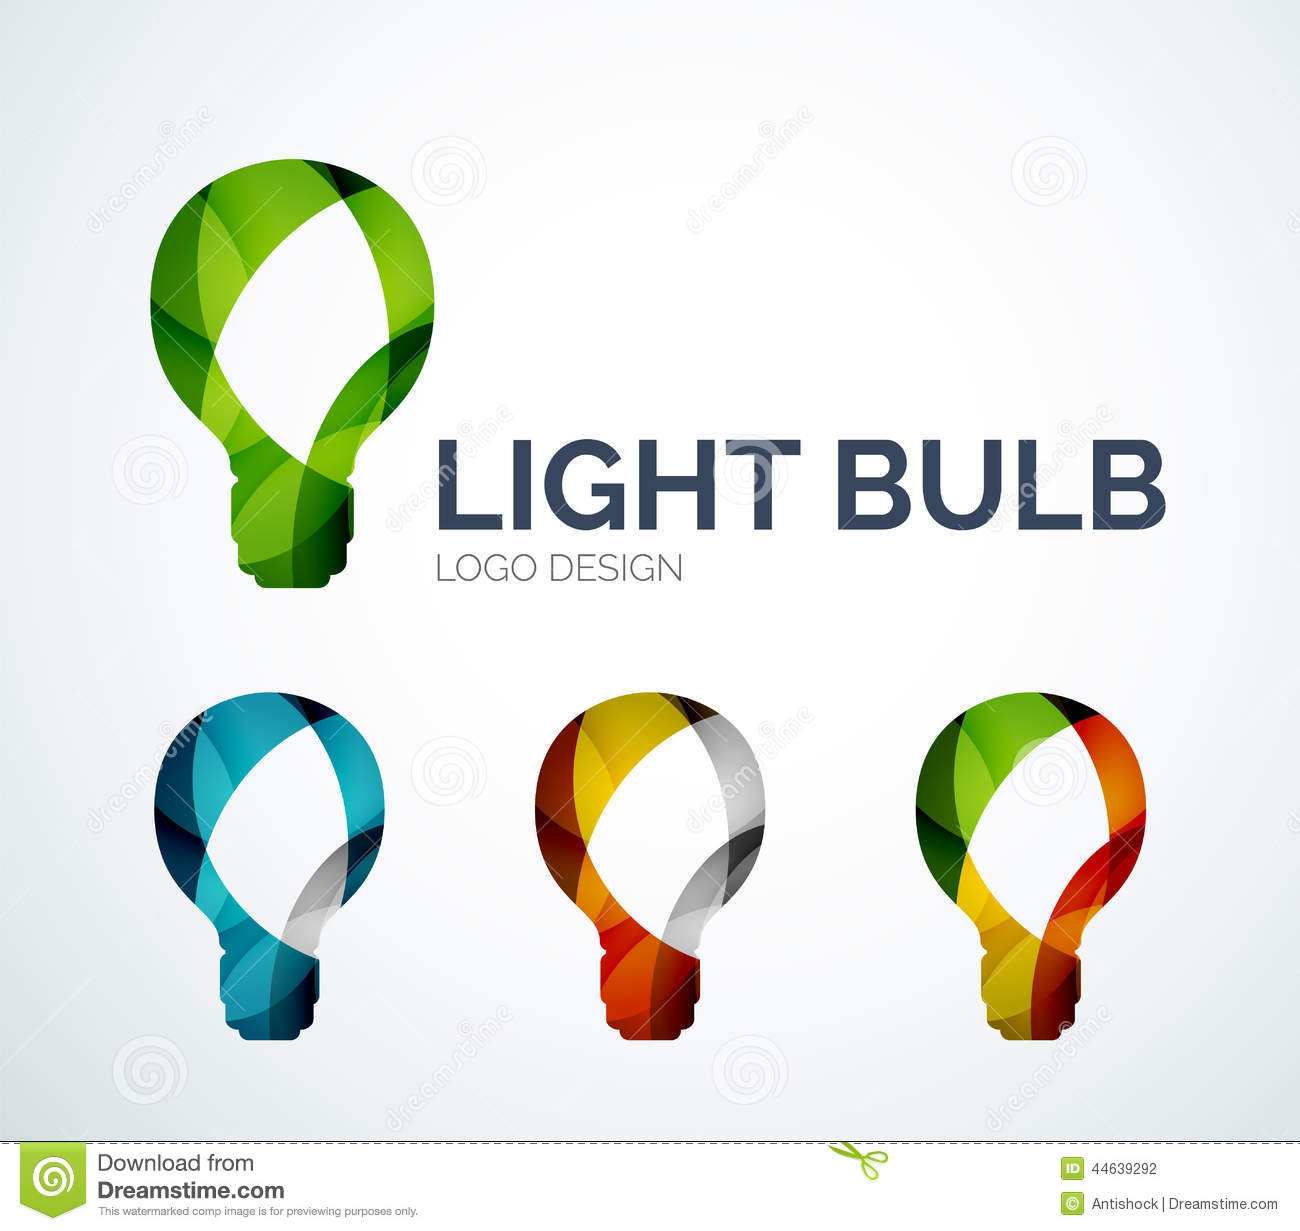 Light bulb logo design made of color pieces